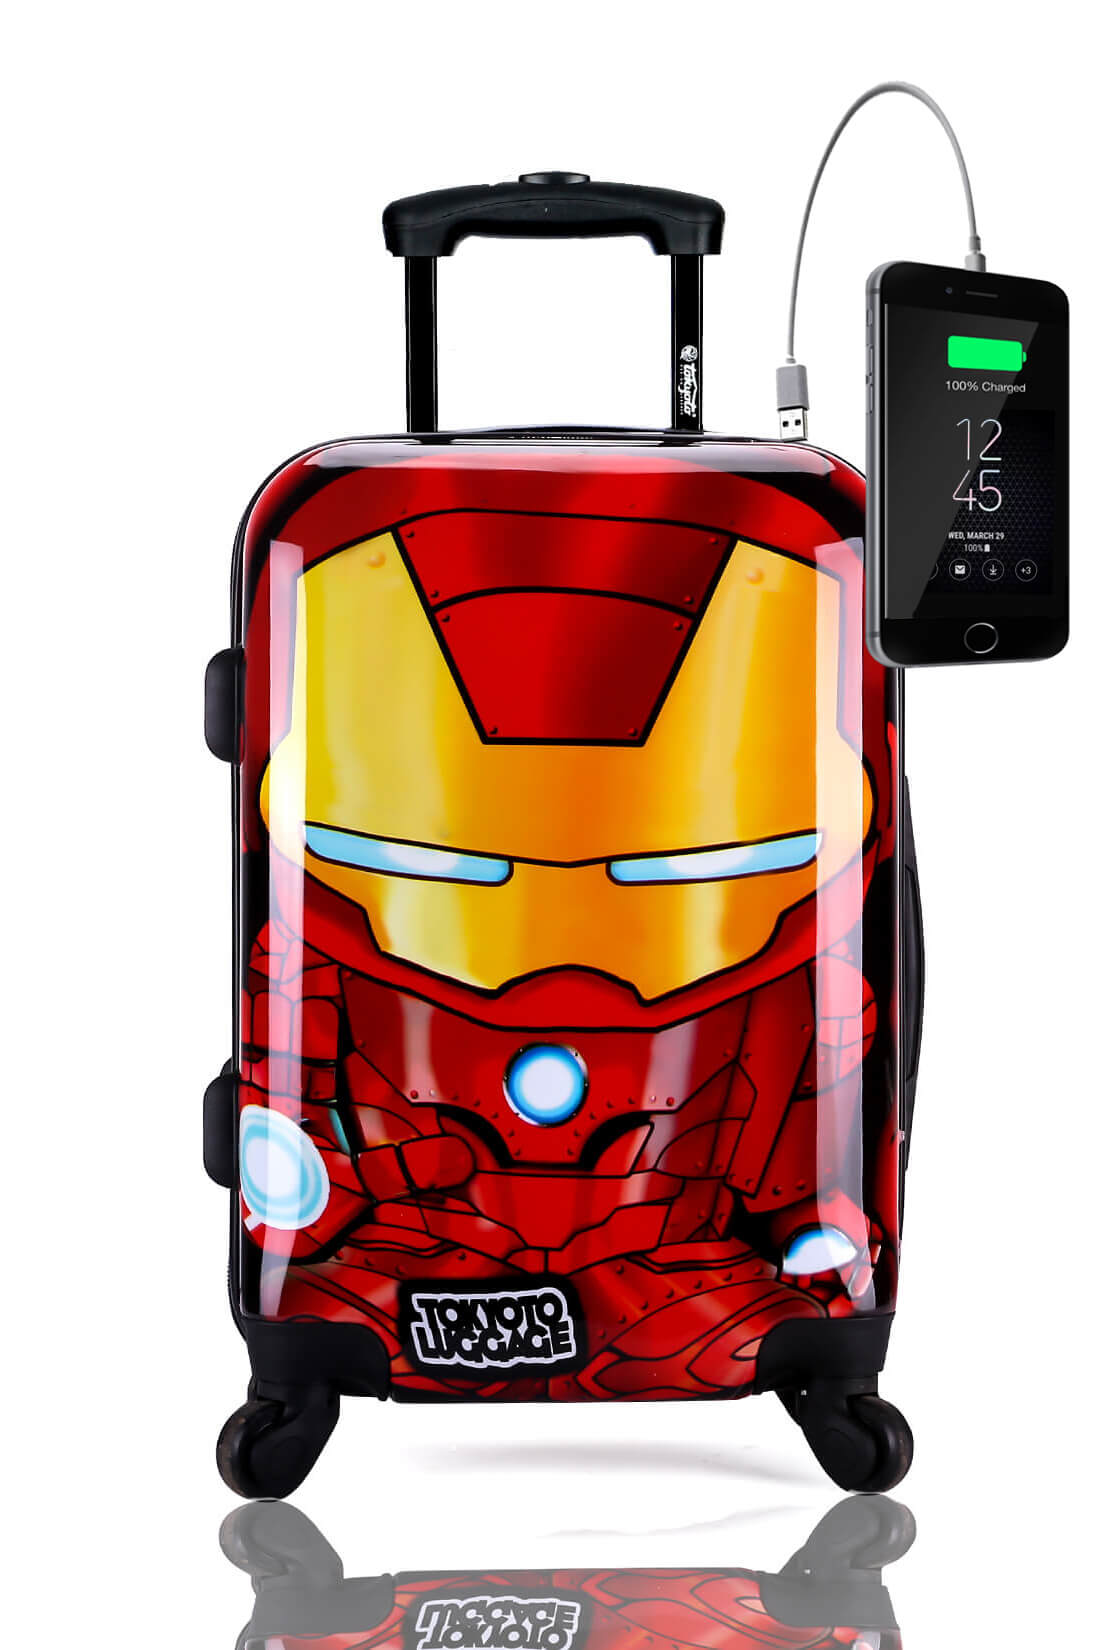 Valise Online Cabine Trolley Enfant TOKYOTO LUGGAGE Modelle IRON BOY